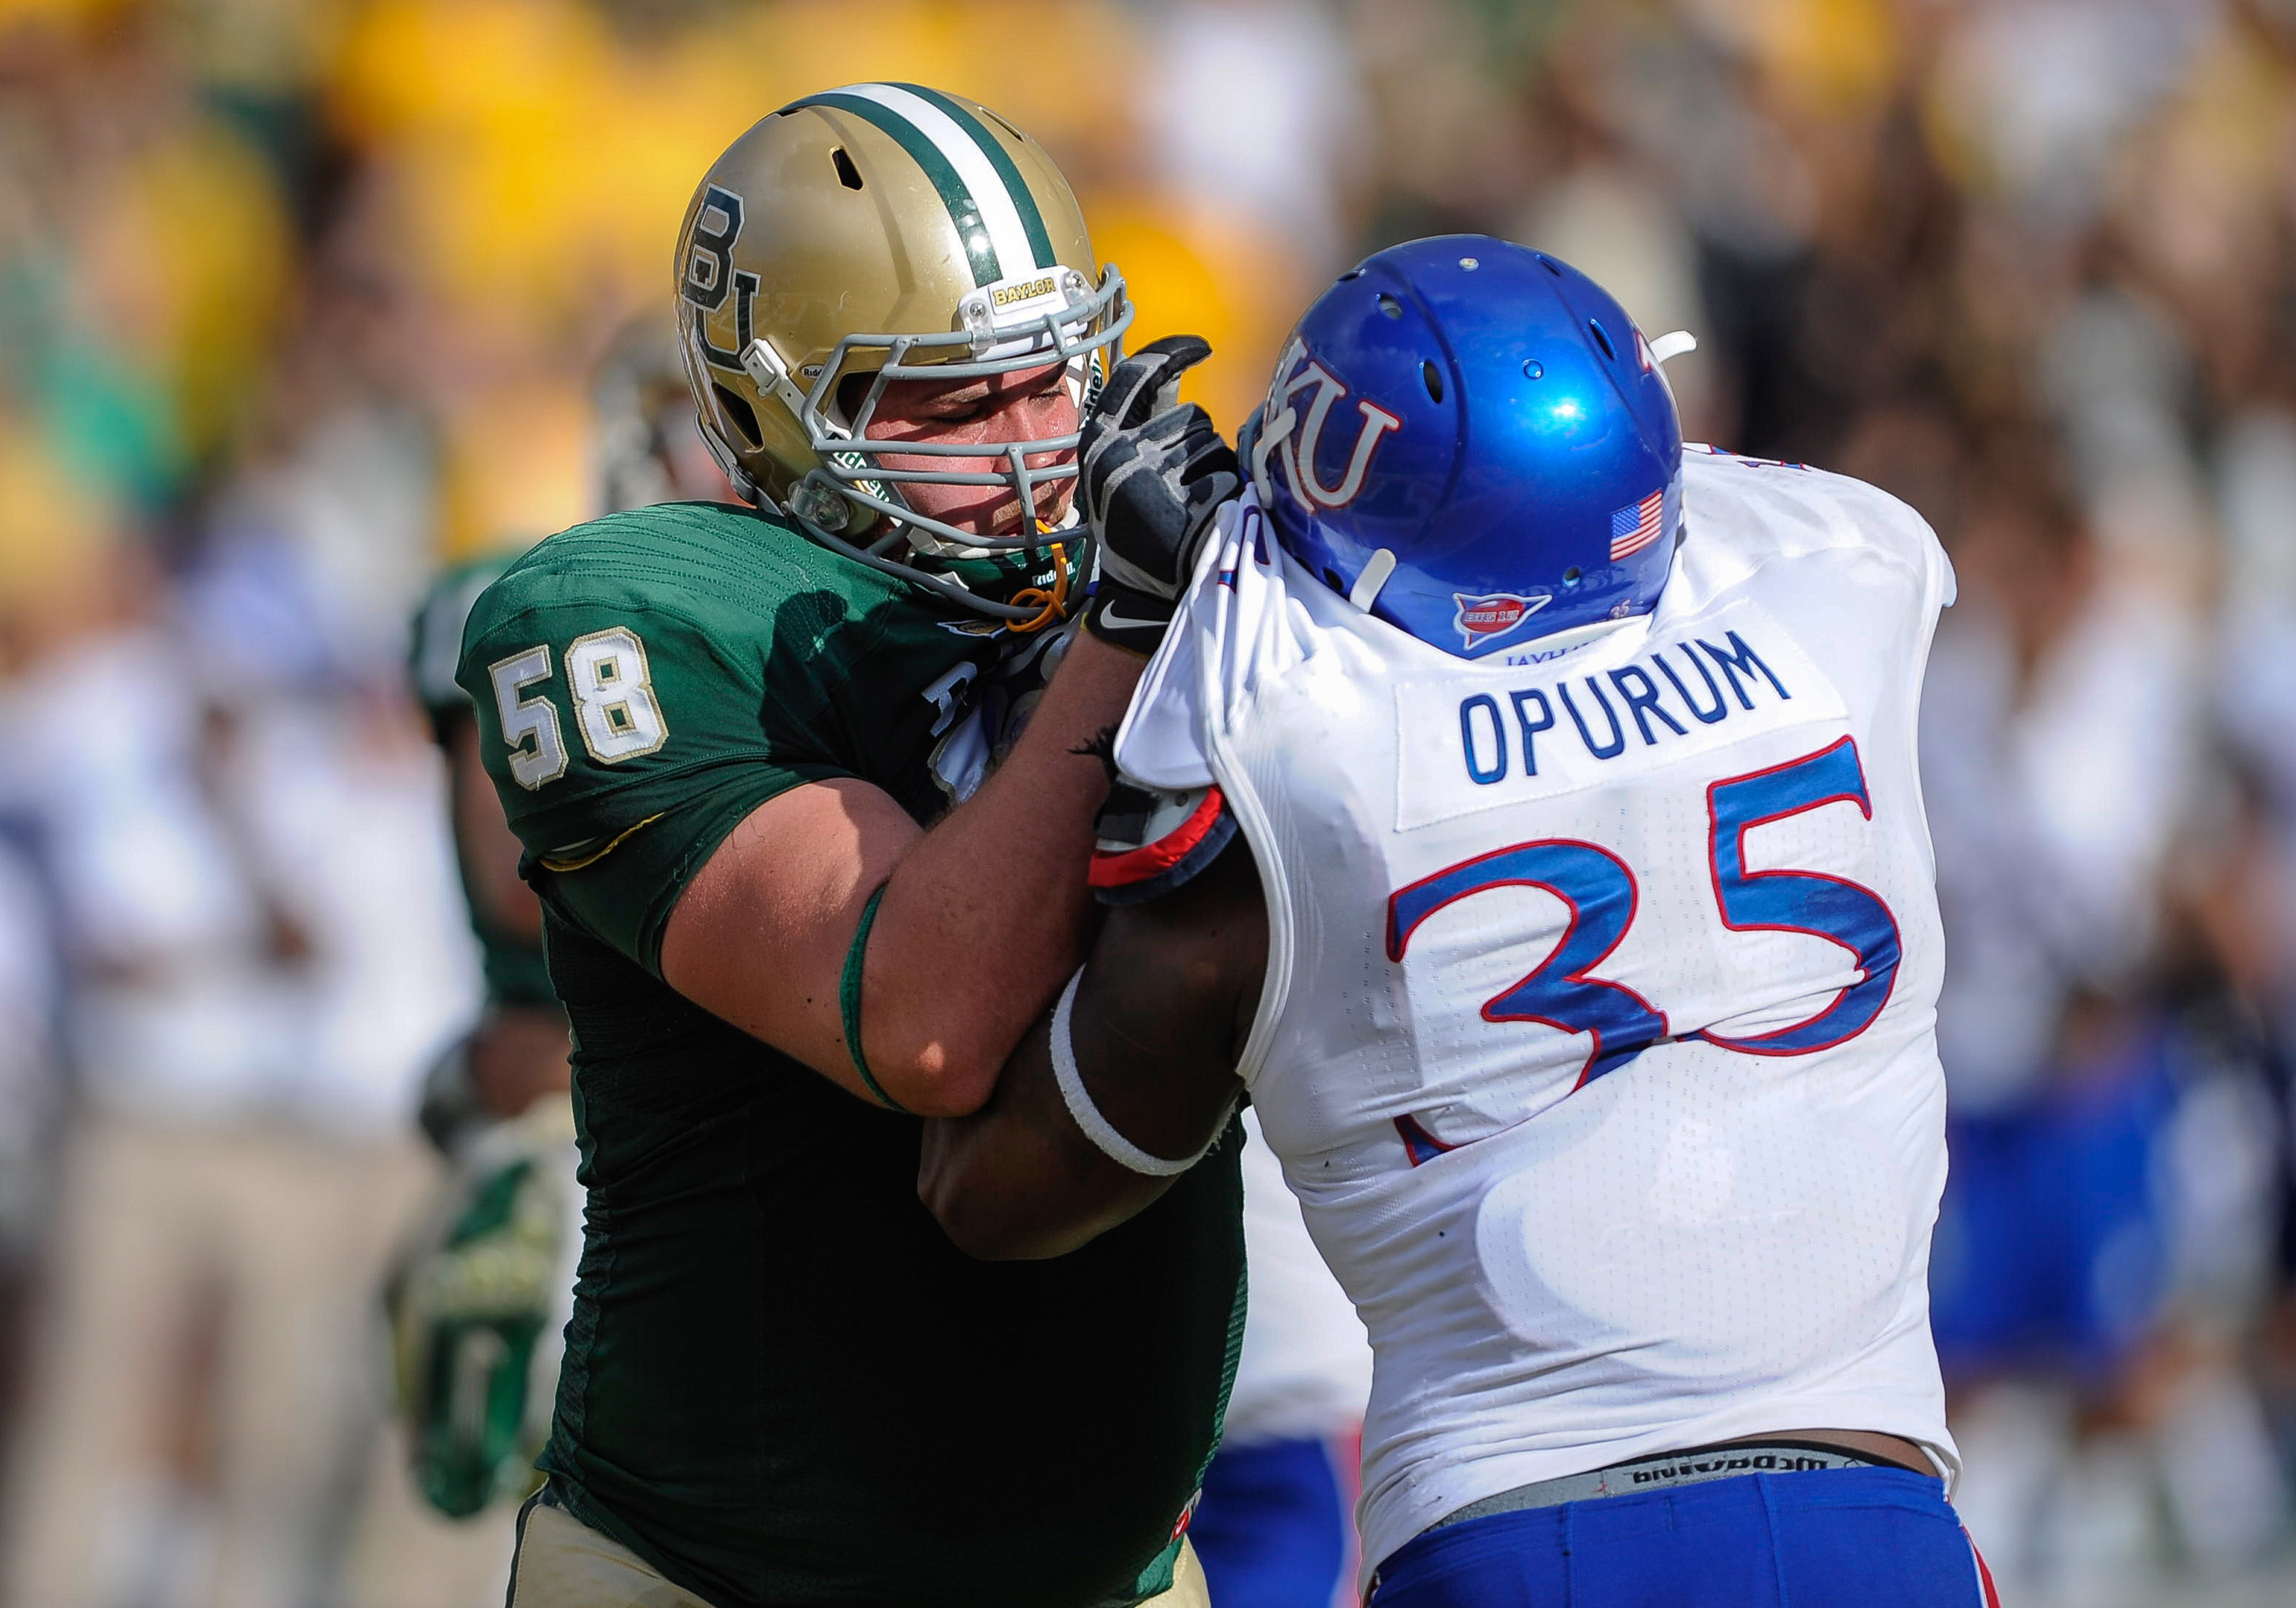 Spencer Drango was the jewel of Baylor's recruiting class two years ago and has now developed into an All-American caliber player.